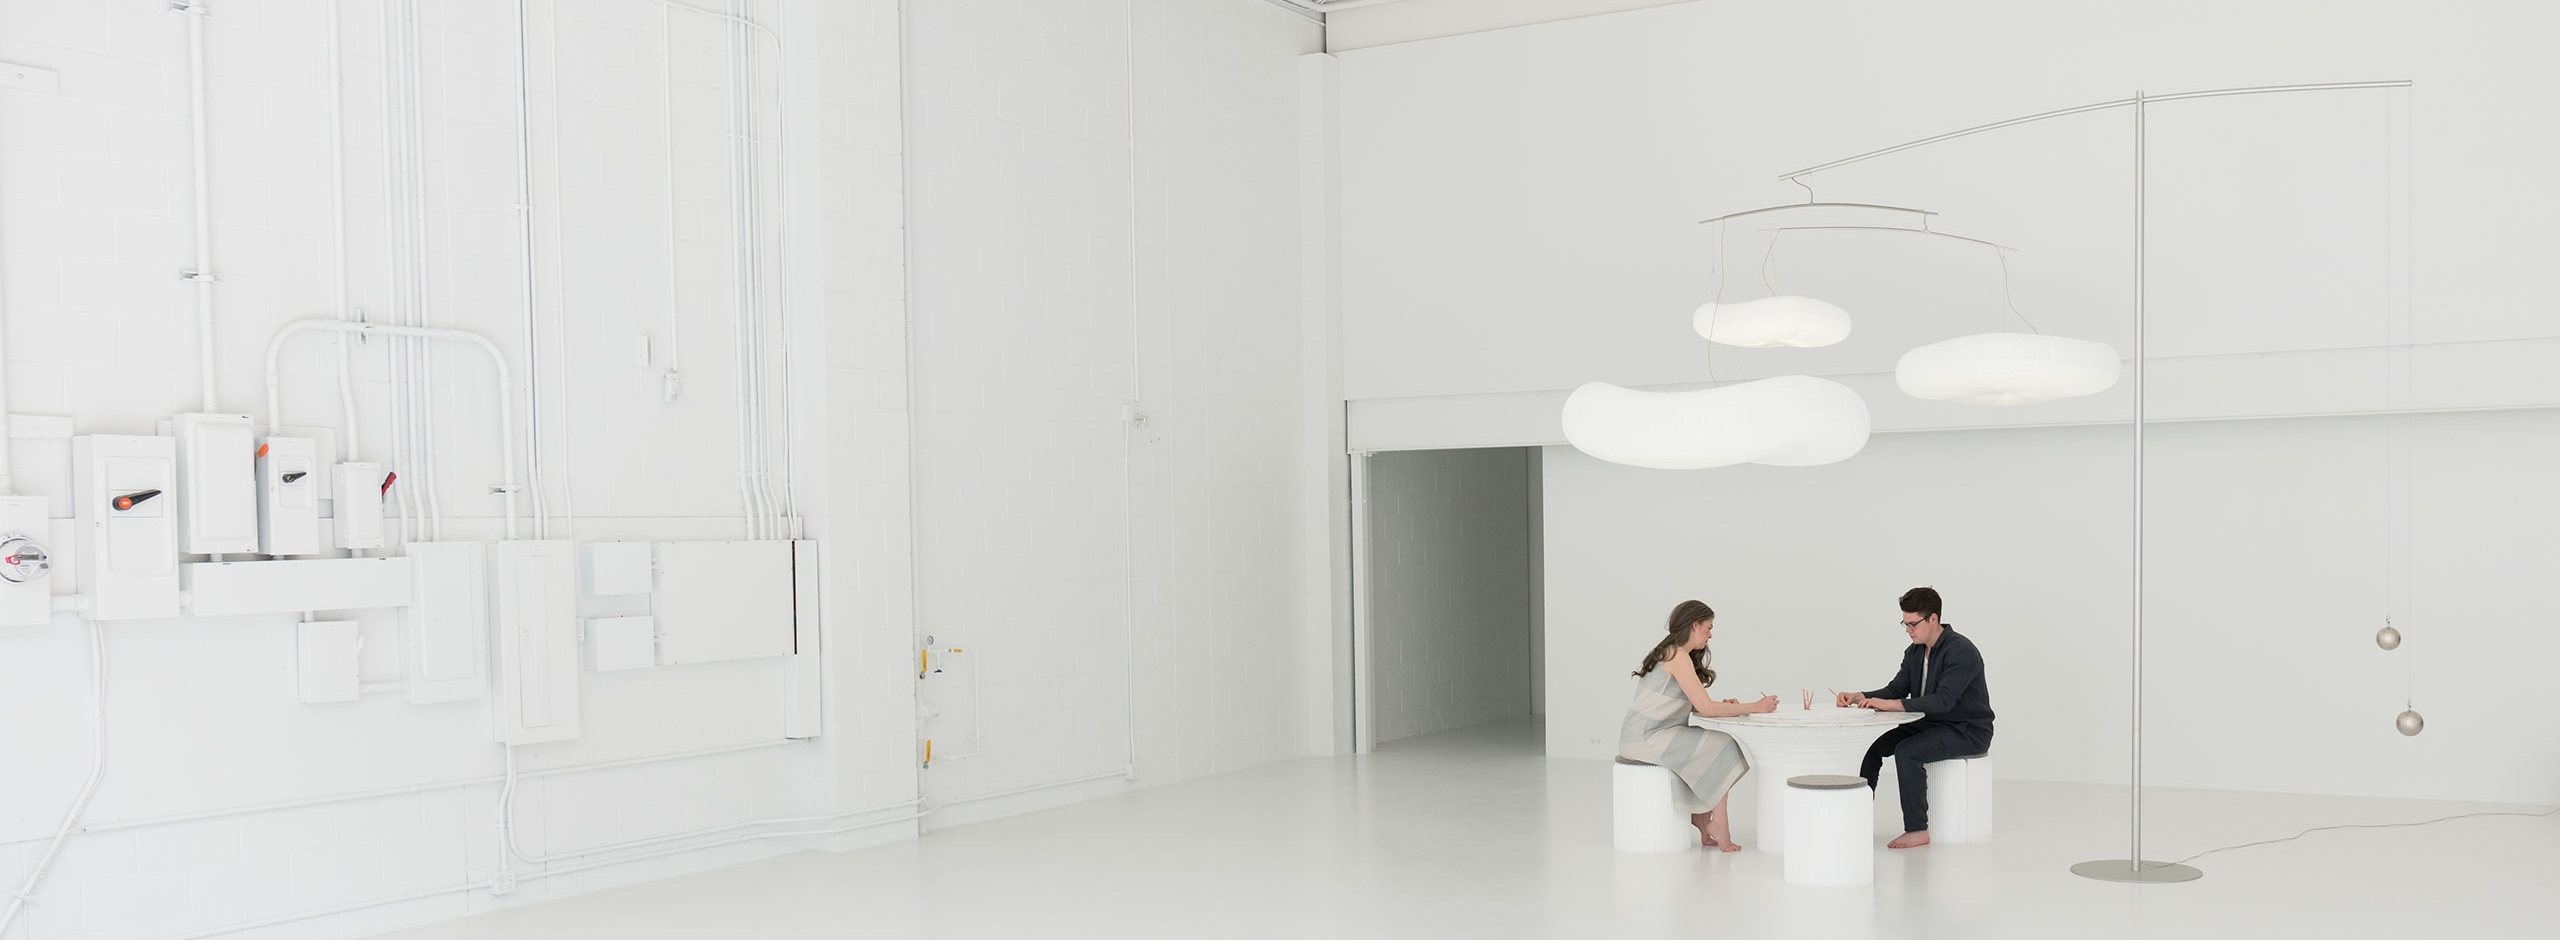 molo's paper furniture includes flexible paper stools and tables, as well as lighting.